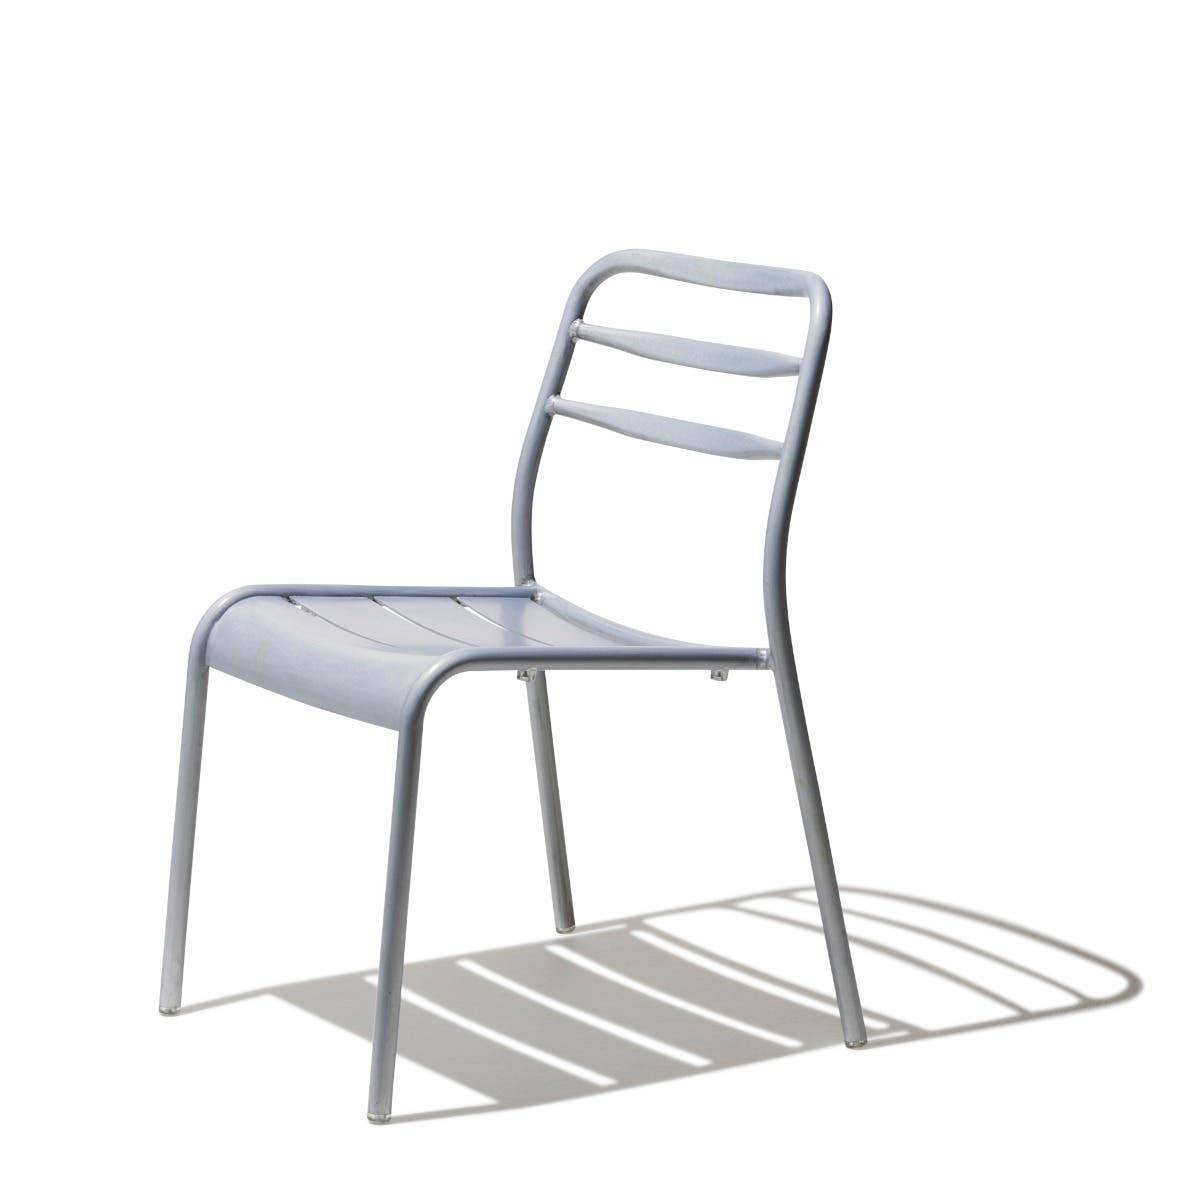 Industry West Suzy Side Chair White